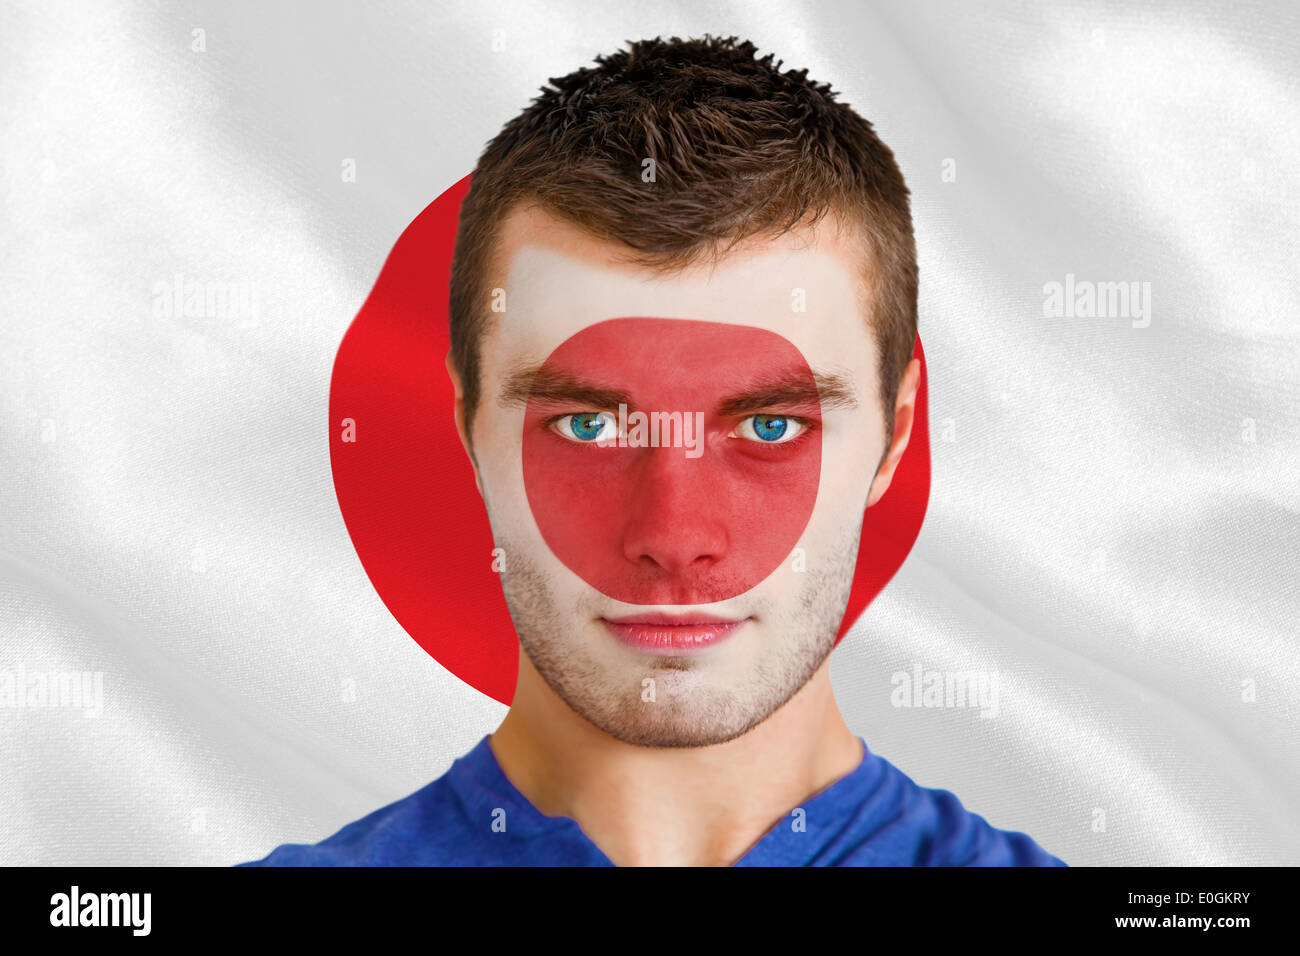 Serious young japan fan with facepaint - Stock Image